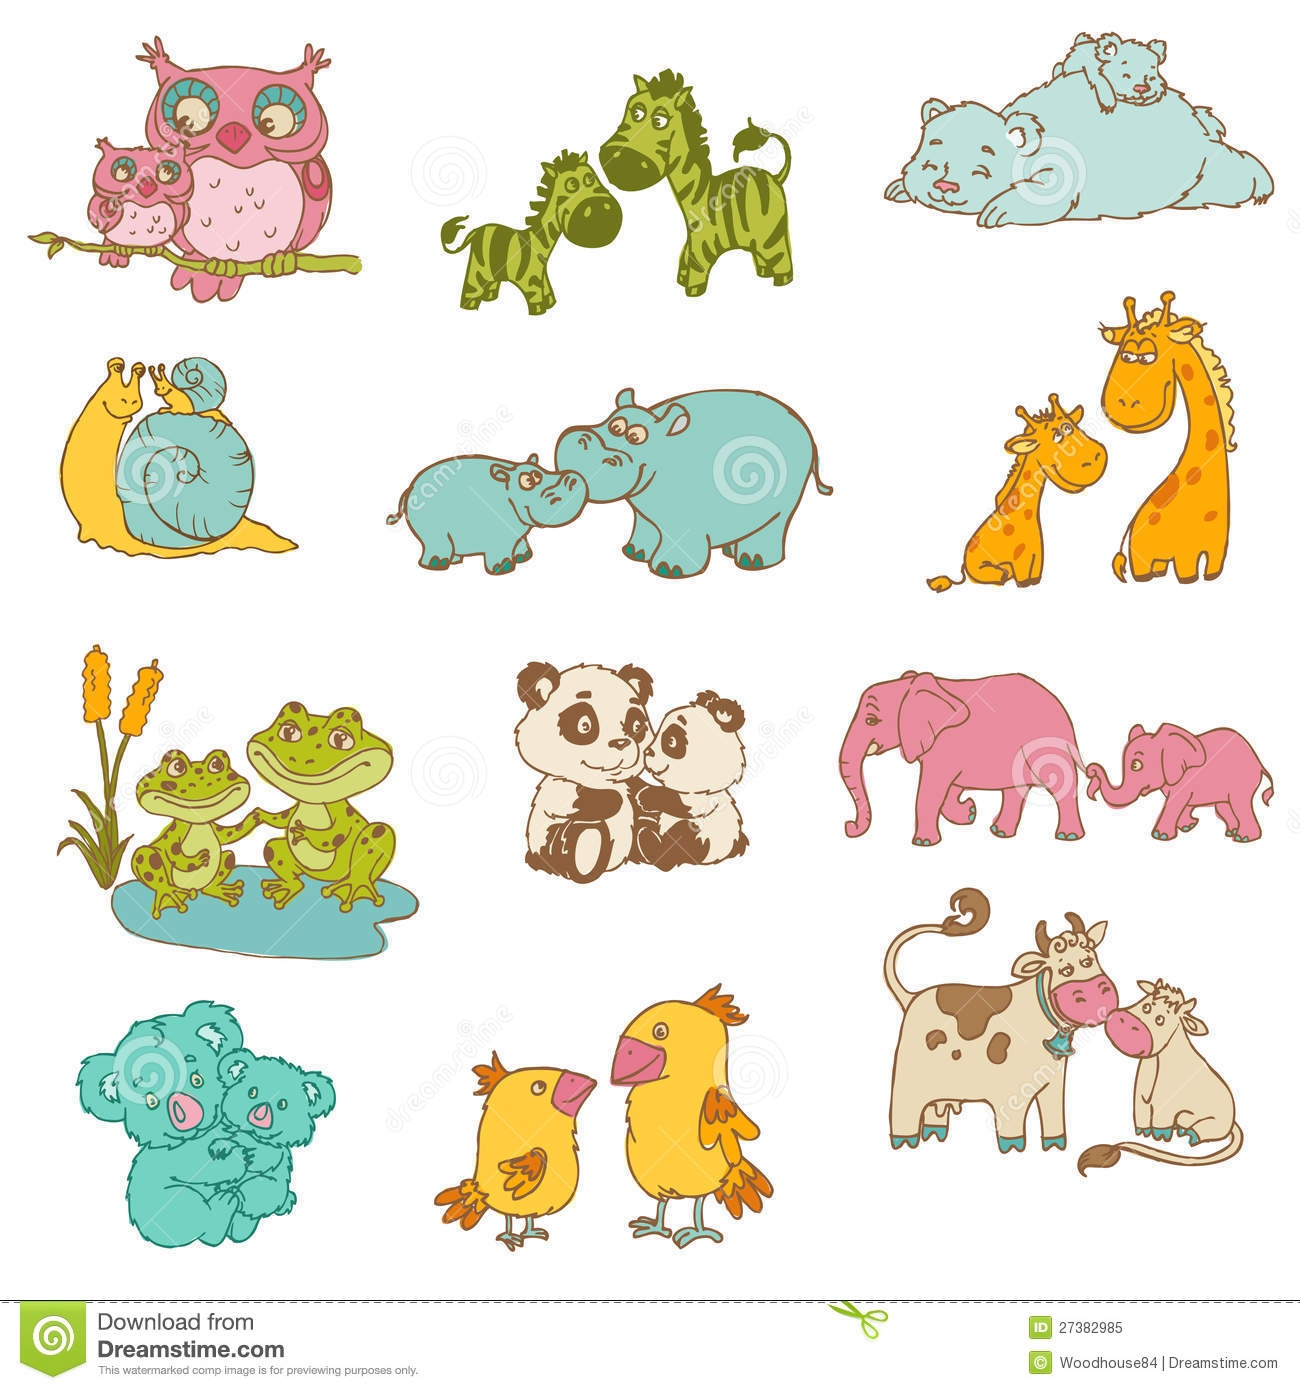 Mama baby animal clipart banner stock Mom and baby animal digital clipart - ClipartFox banner stock